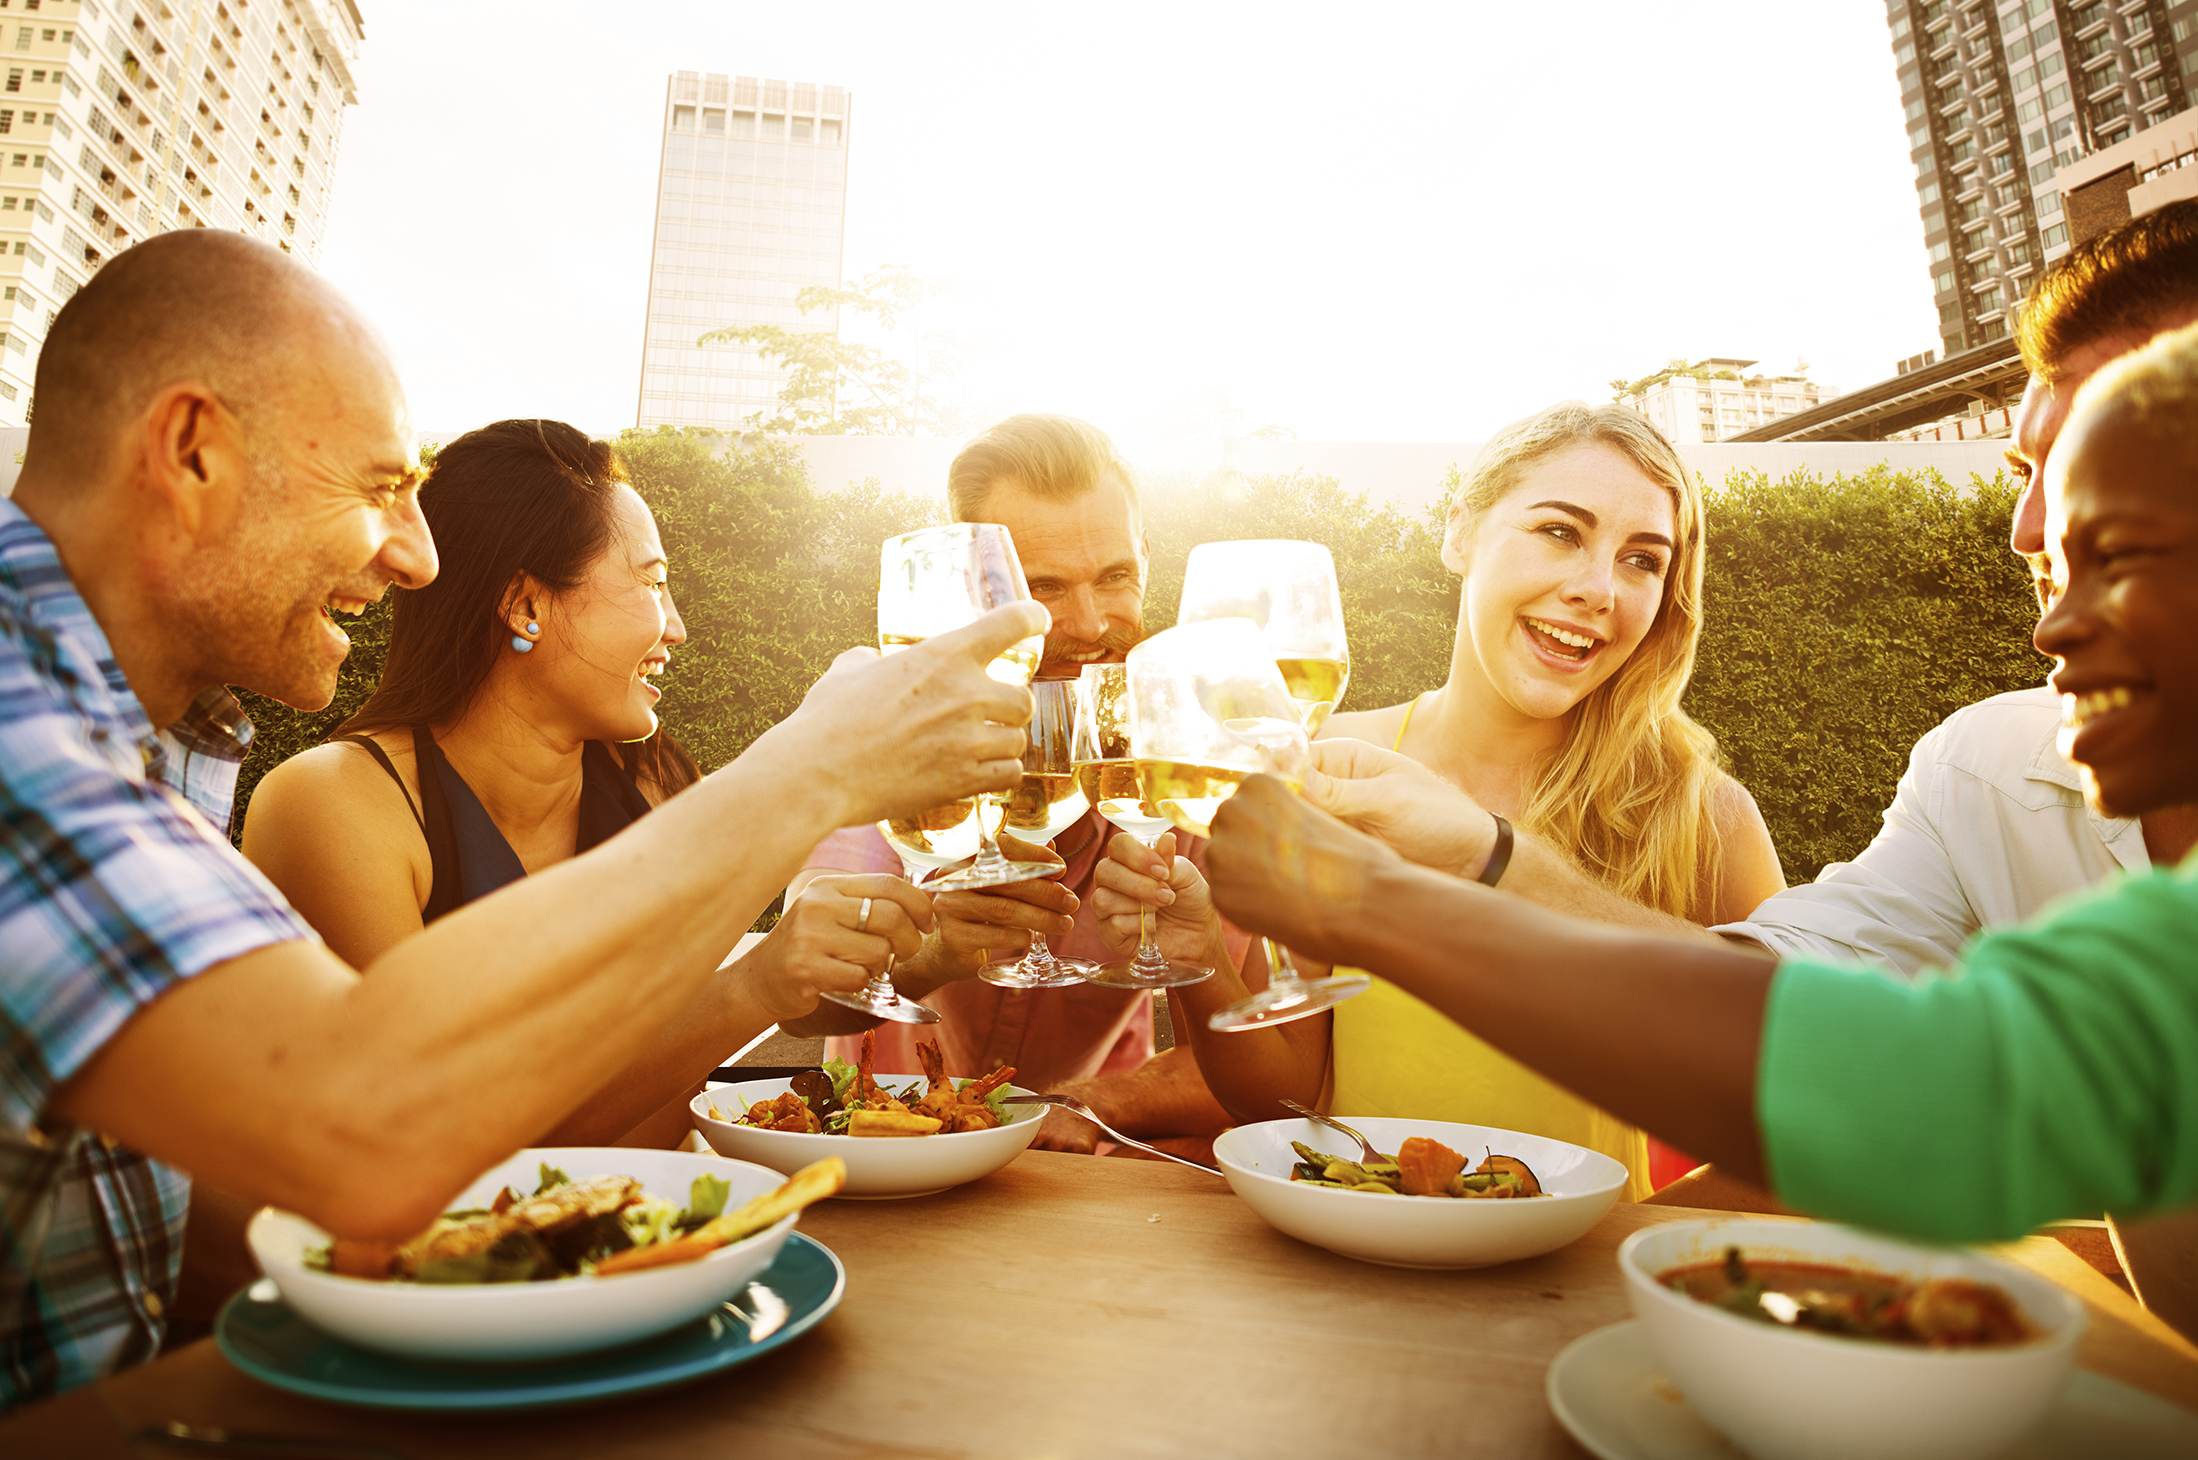 Friends Dining Outdoors Party Cheerful Toast Concept Foodies